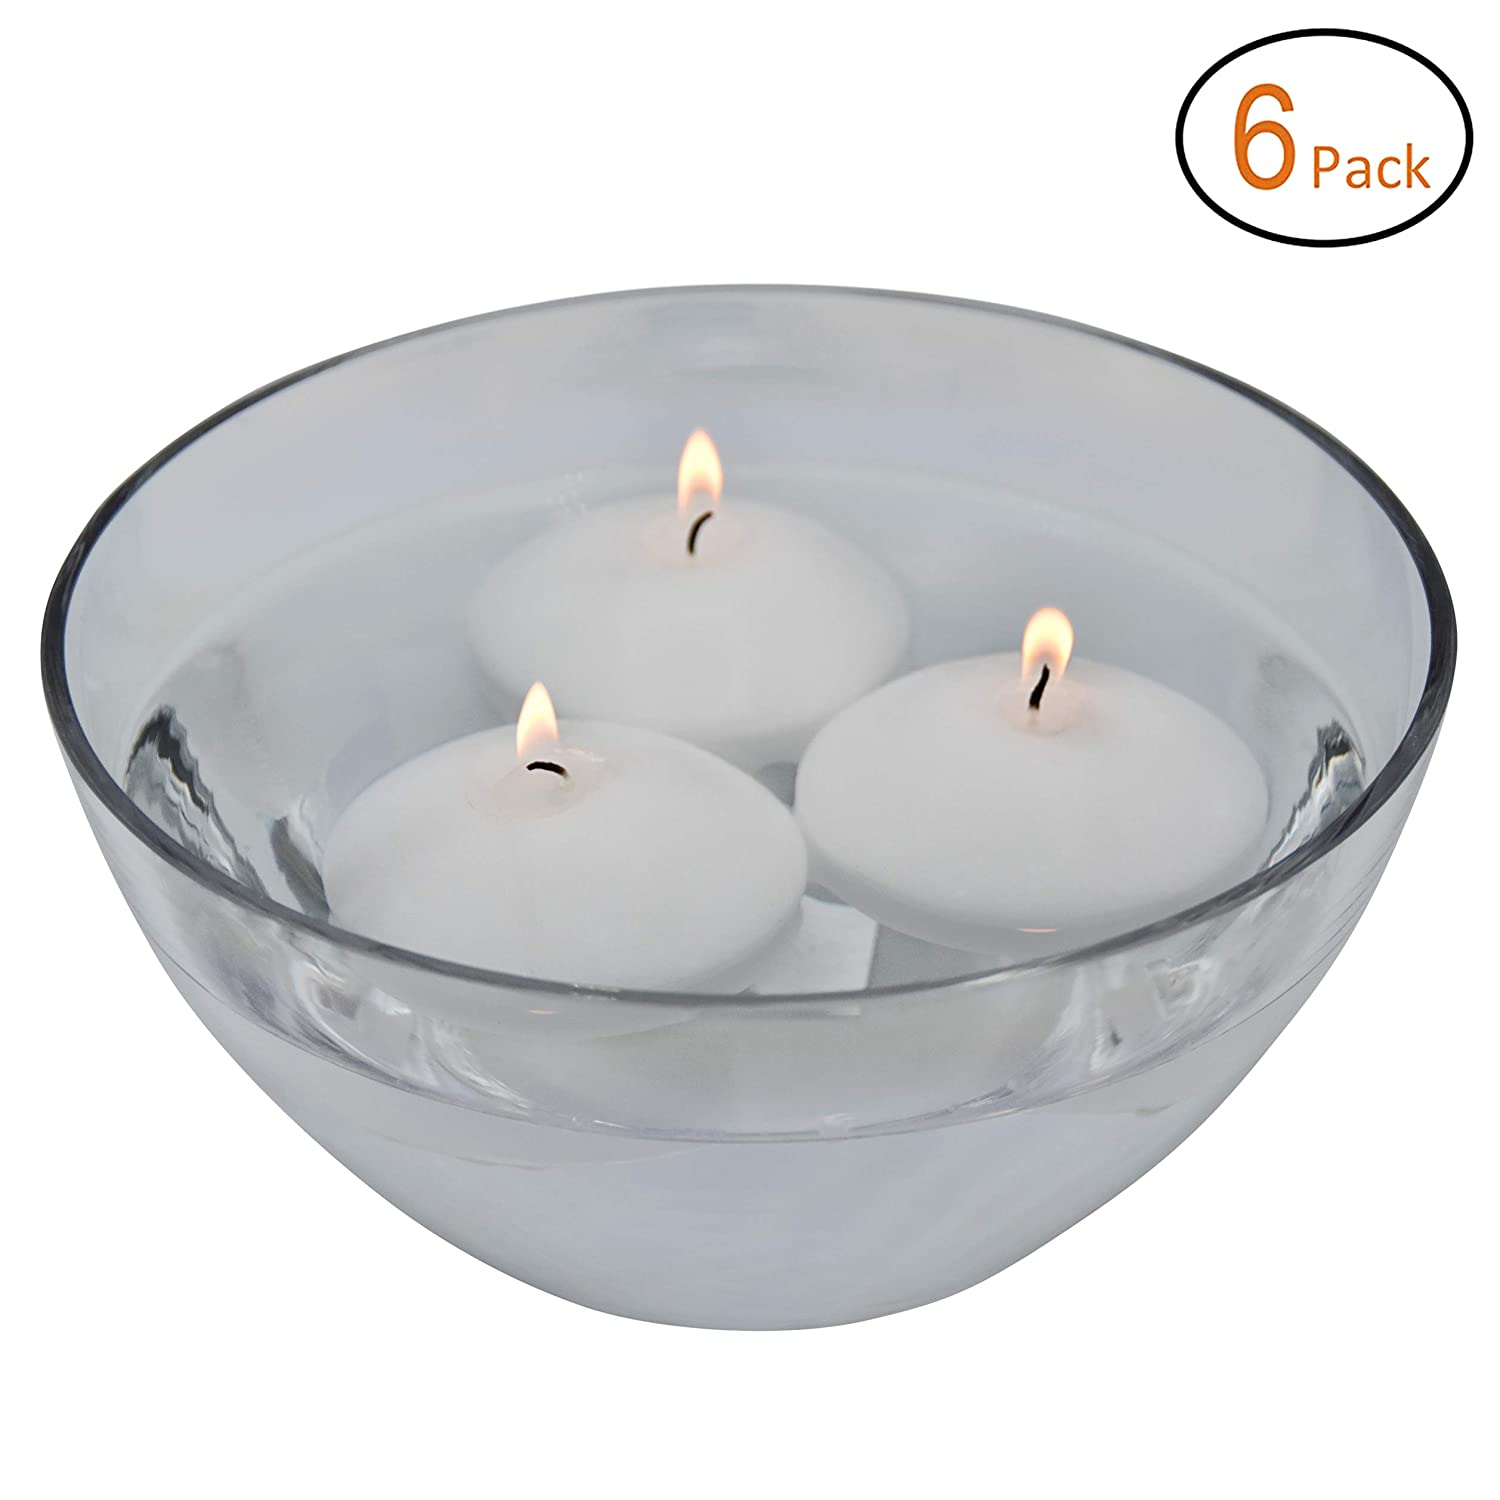 3 Inch Decorarive Candle Floating Candles Unscented Discs for Wedding Ivory Pool Party Set of 6 Holiday /& Home Decor